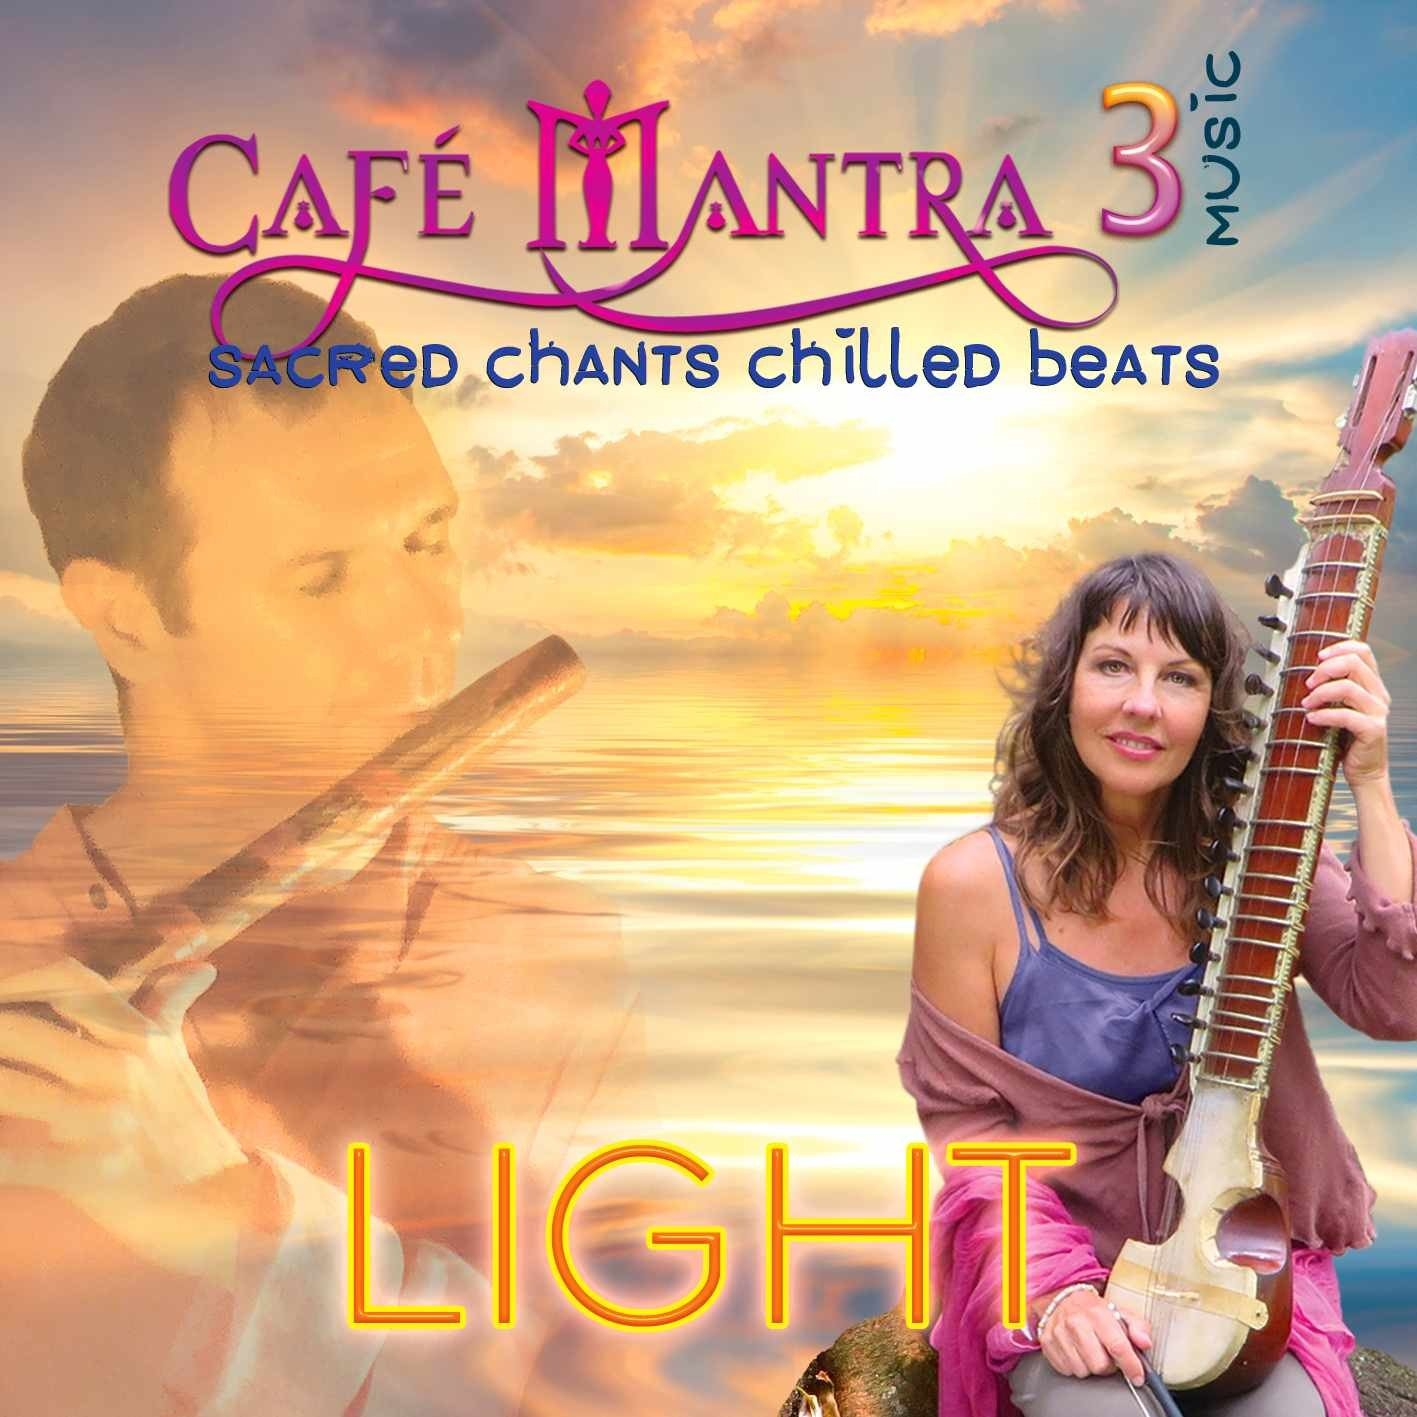 CD Cafe Mantra Music3 LIGHT 00002